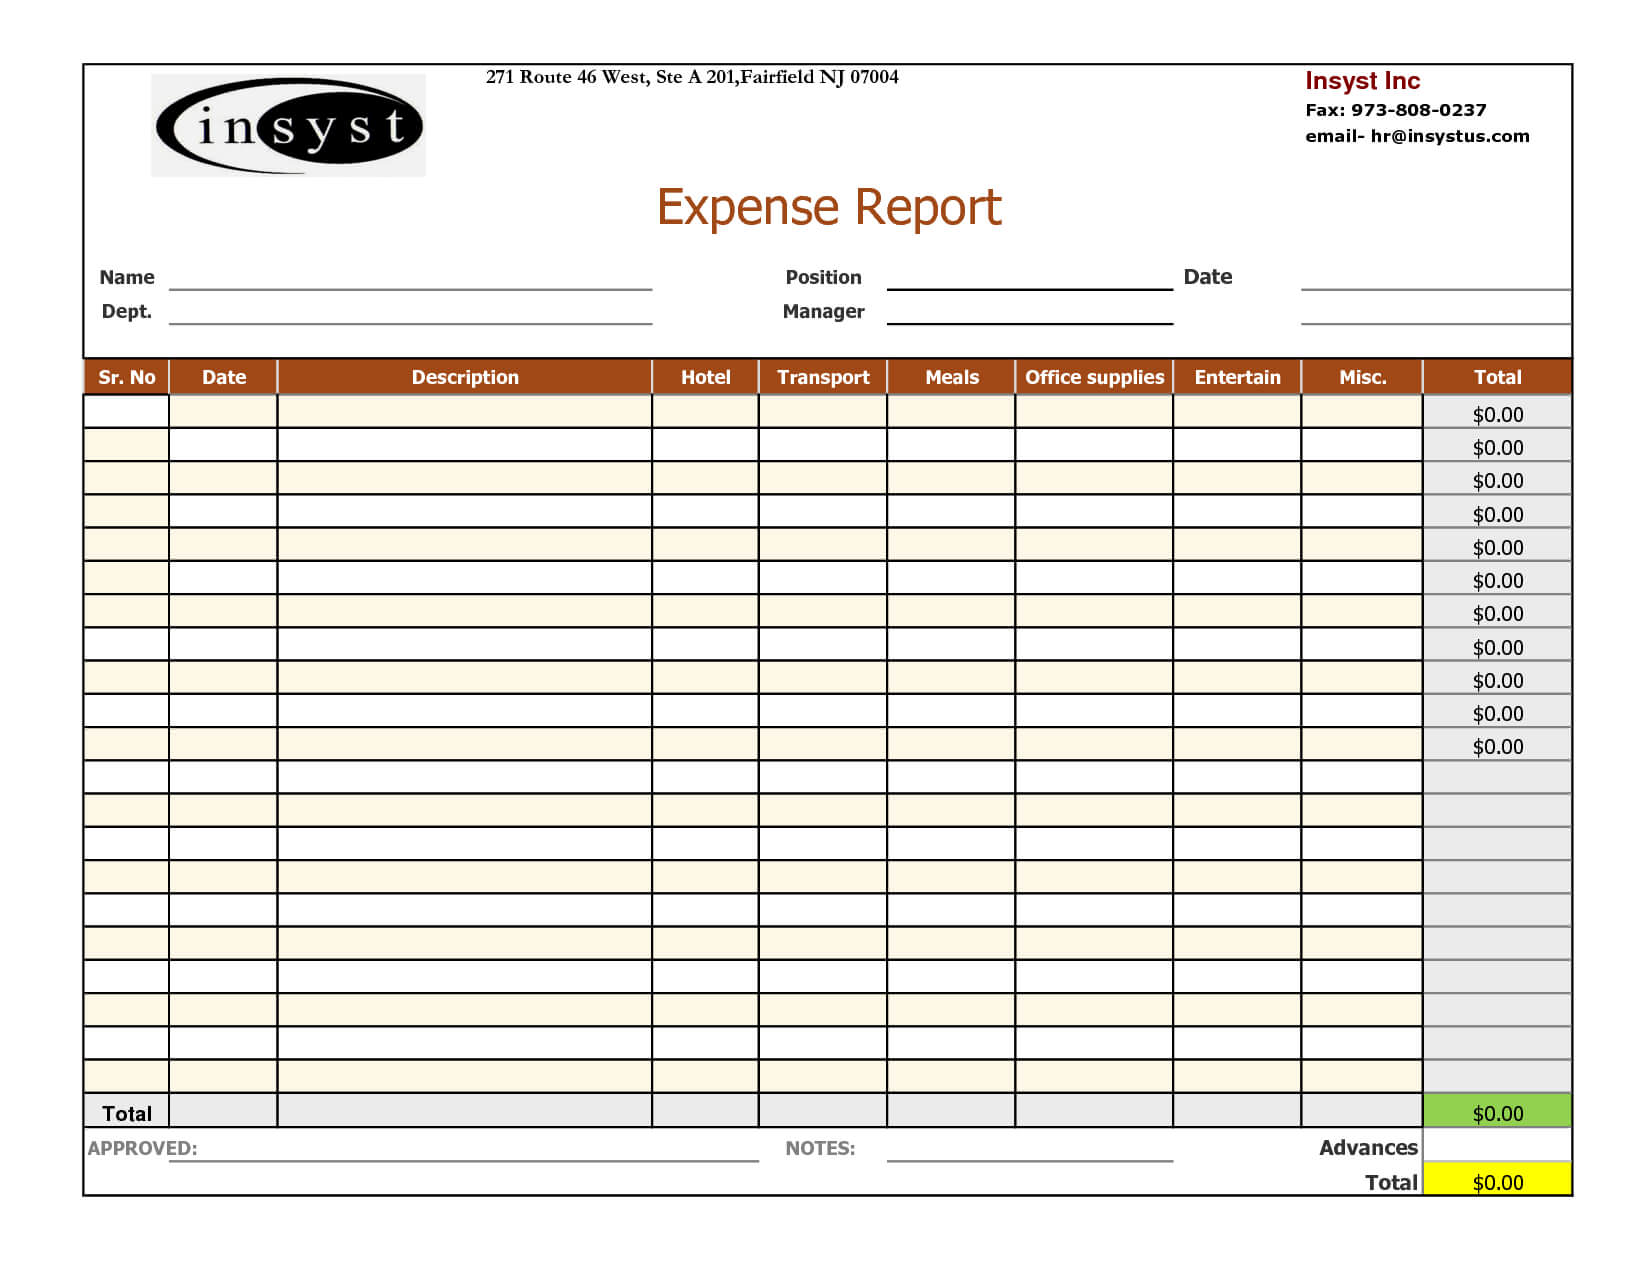 013 Employee Expense Report Template Ideas Google Docs Within Per Diem Expense Report Template